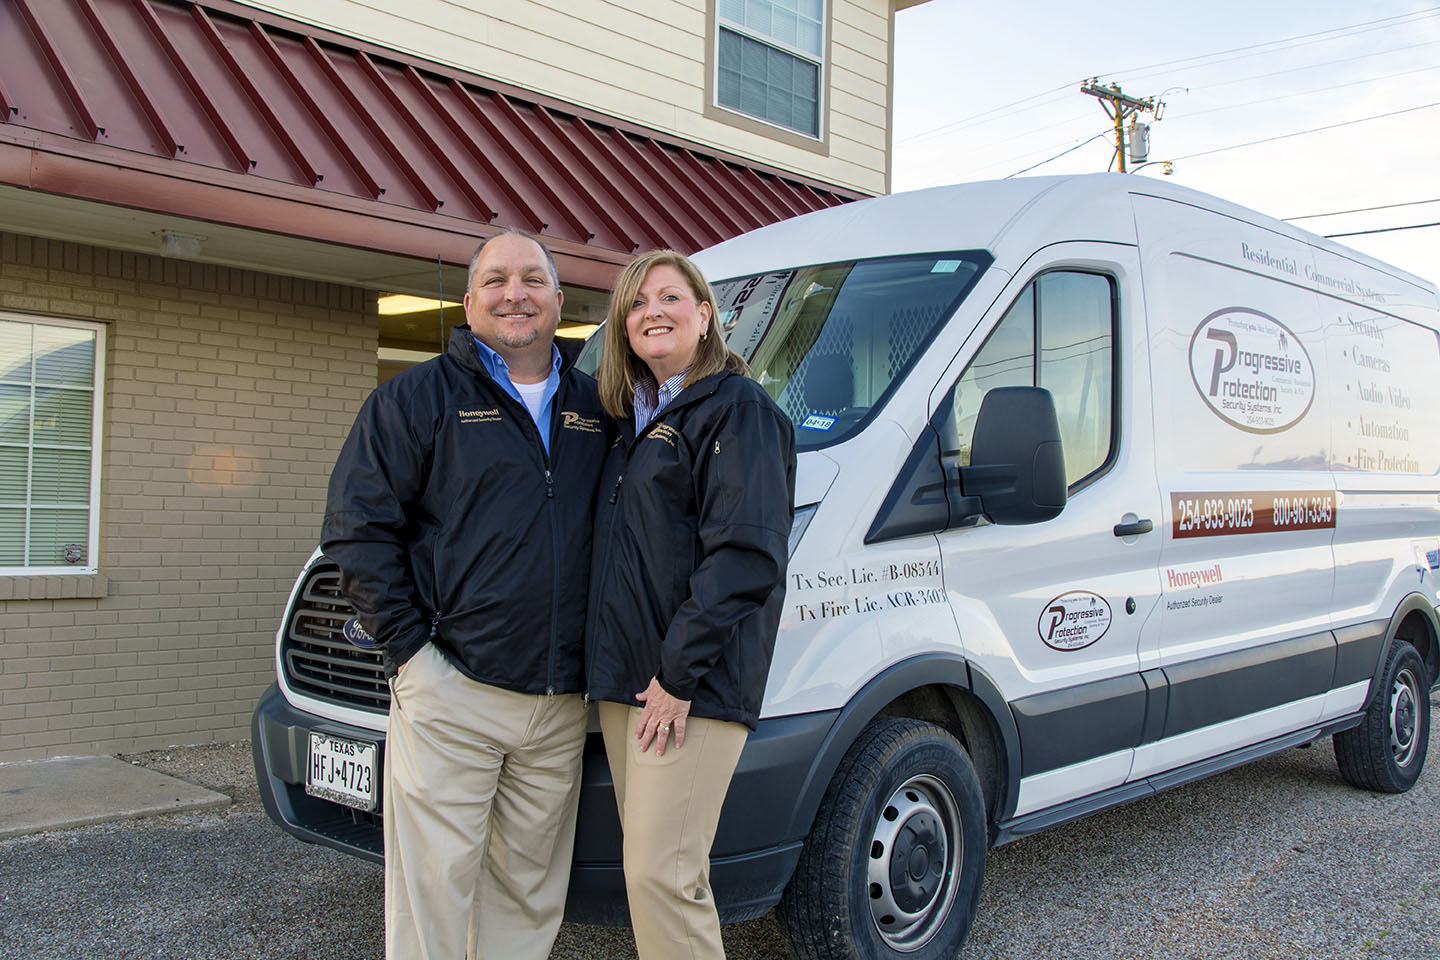 Eddie and Patsy Notgrass, owners of Progressive Protection Security Systems in Belton, Texas